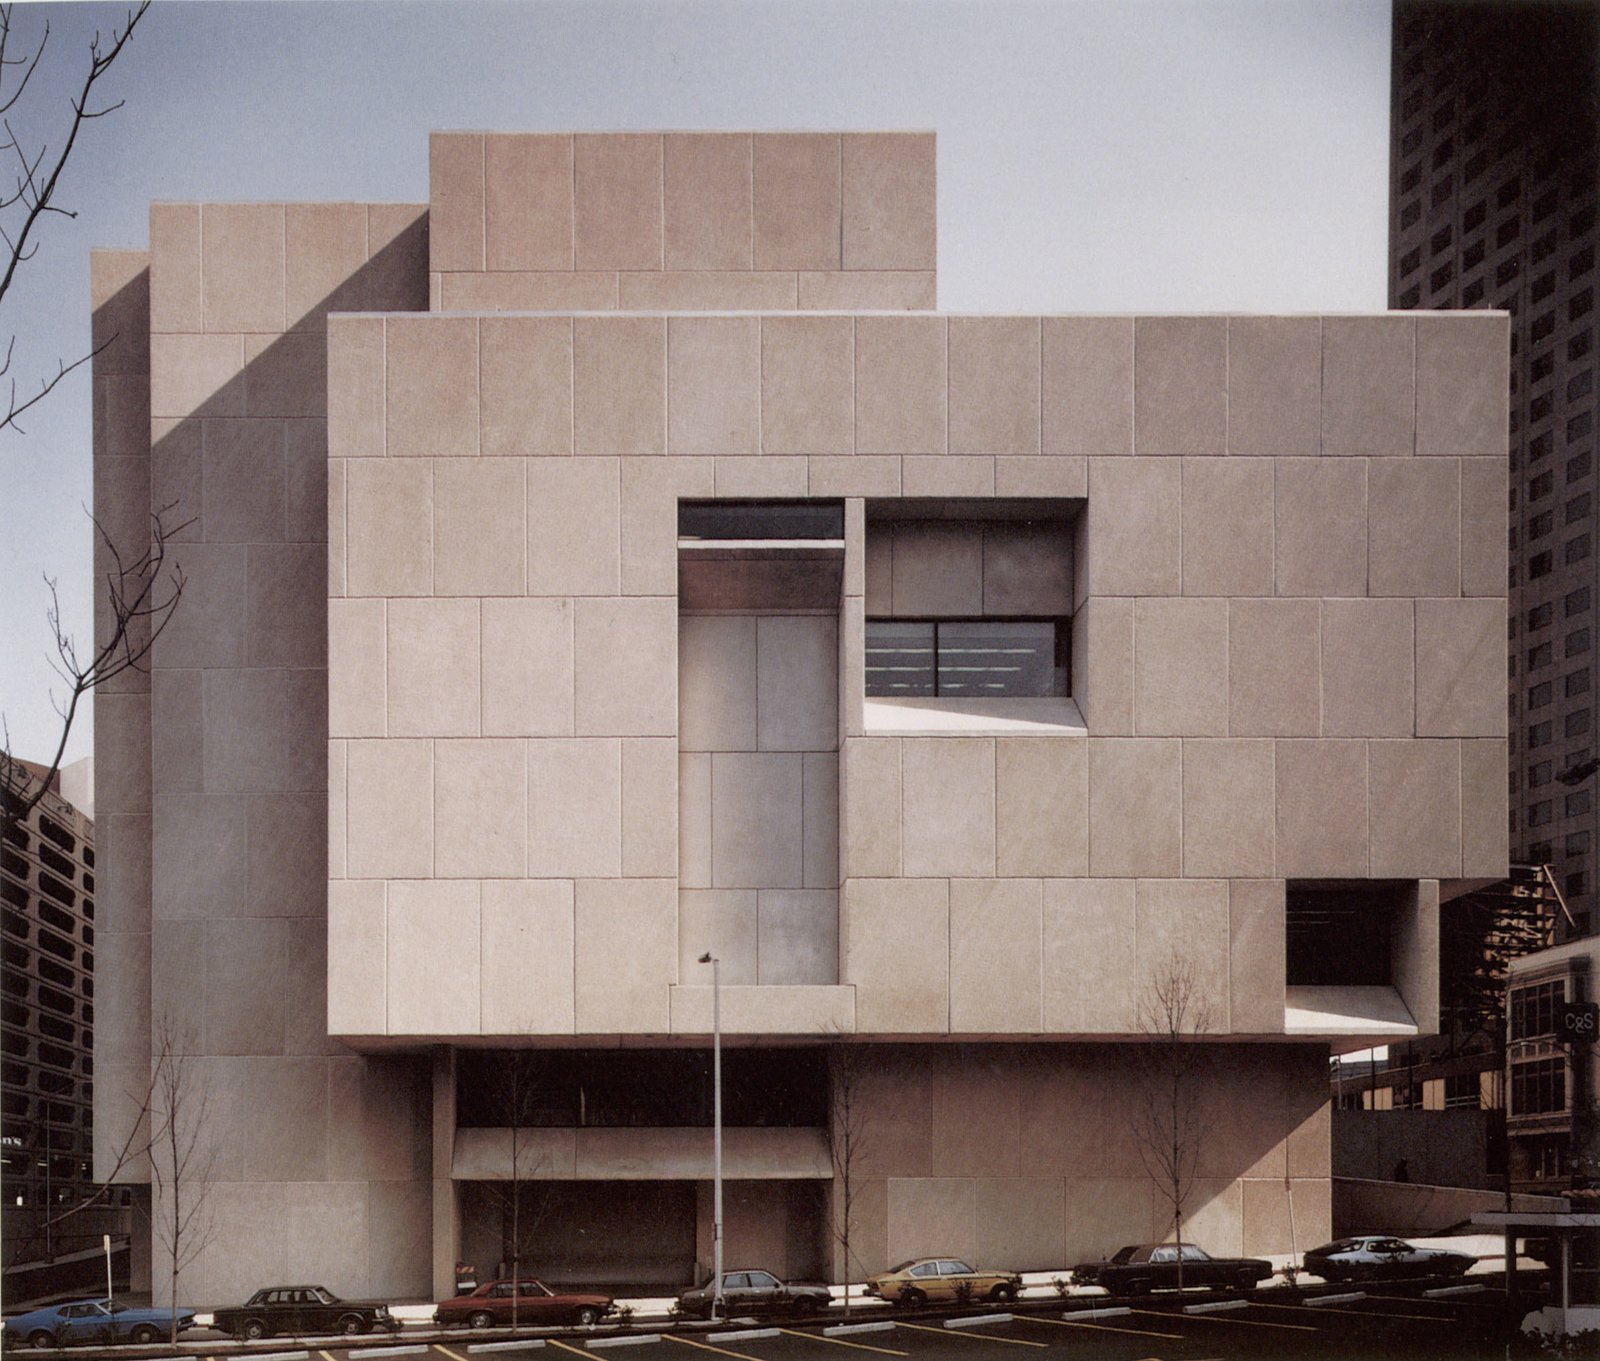 """The last structure that Breuer designed (he was too ill to attend the dedication ceremony), the Atlanta Central Library was an evolution of the style and shapes used for the Whitney, a sculptural structure of cubes right angles. The airy shapes, combined with the heavy massing of concrete, led Barry Bergdoll, the chief curator of architecture at the Museum of Modern Art, to refer to this type of construction as """"the invention of heavy lightness.""""  Photo 11 of 12 in Design Icon: 10 Buildings by Marcel Breuer"""